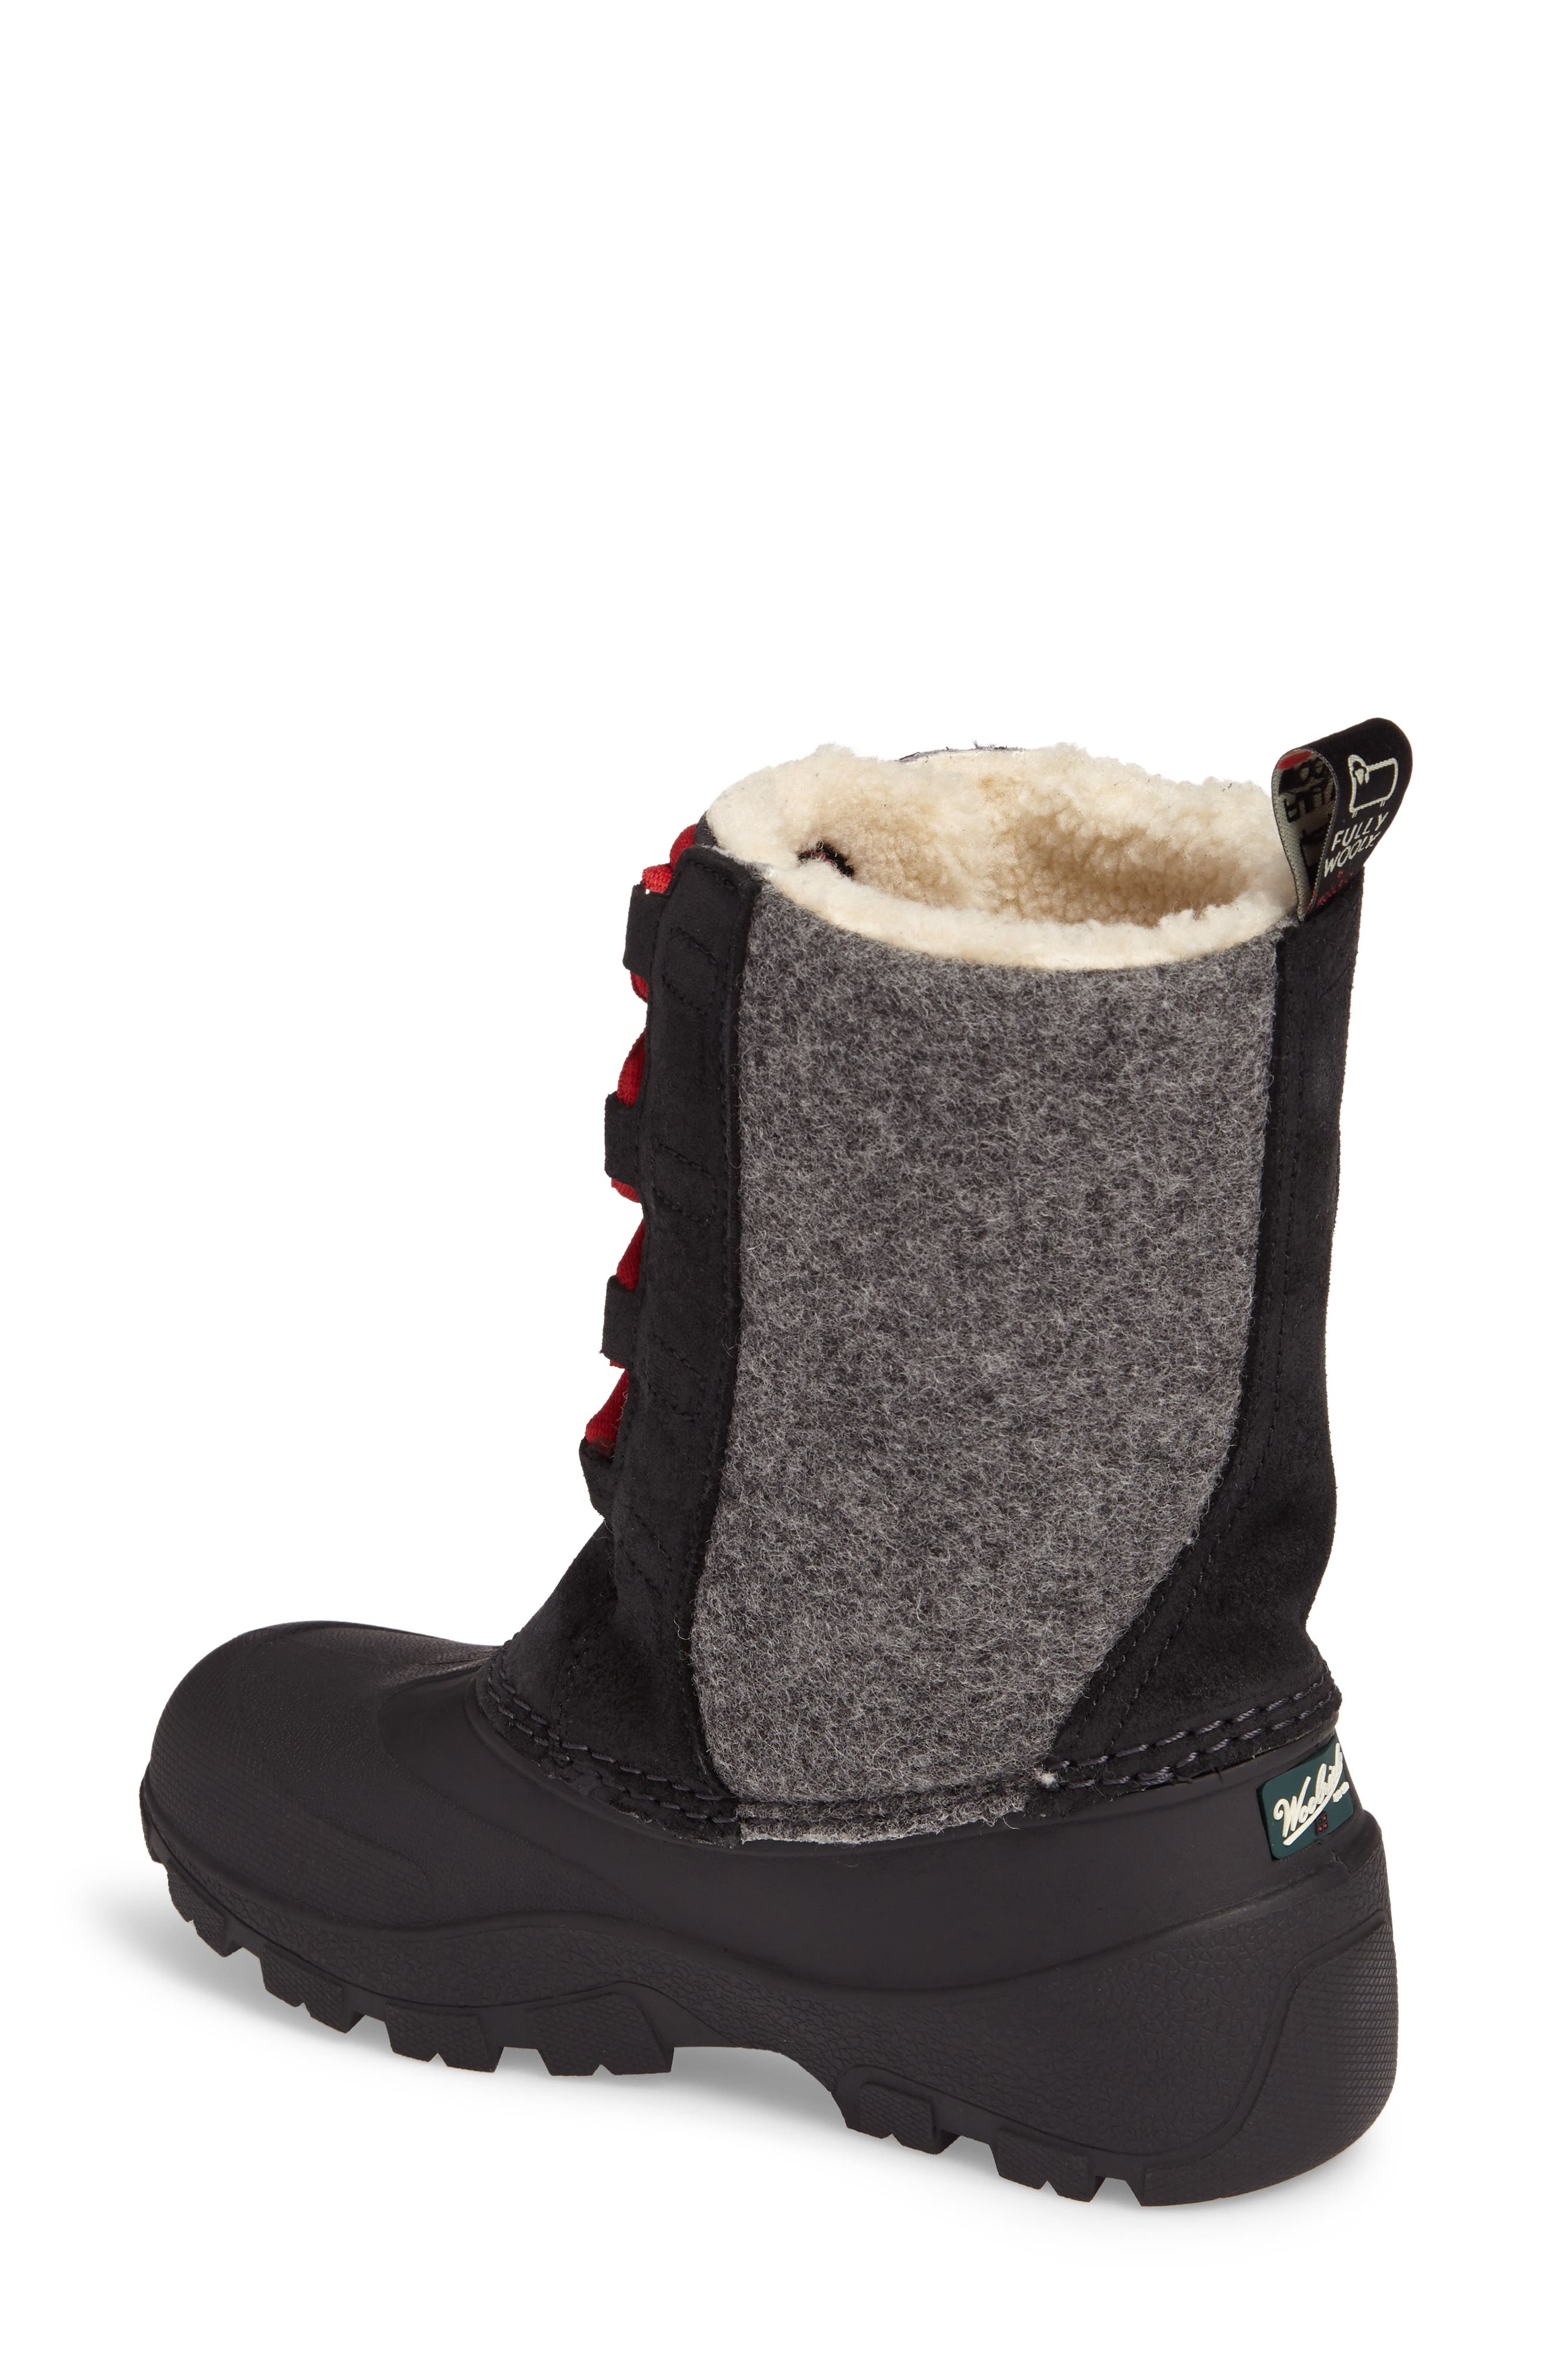 Fully Wooly Tundracat Waterproof Insulated Winter Boot,                             Alternate thumbnail 2, color,                             001